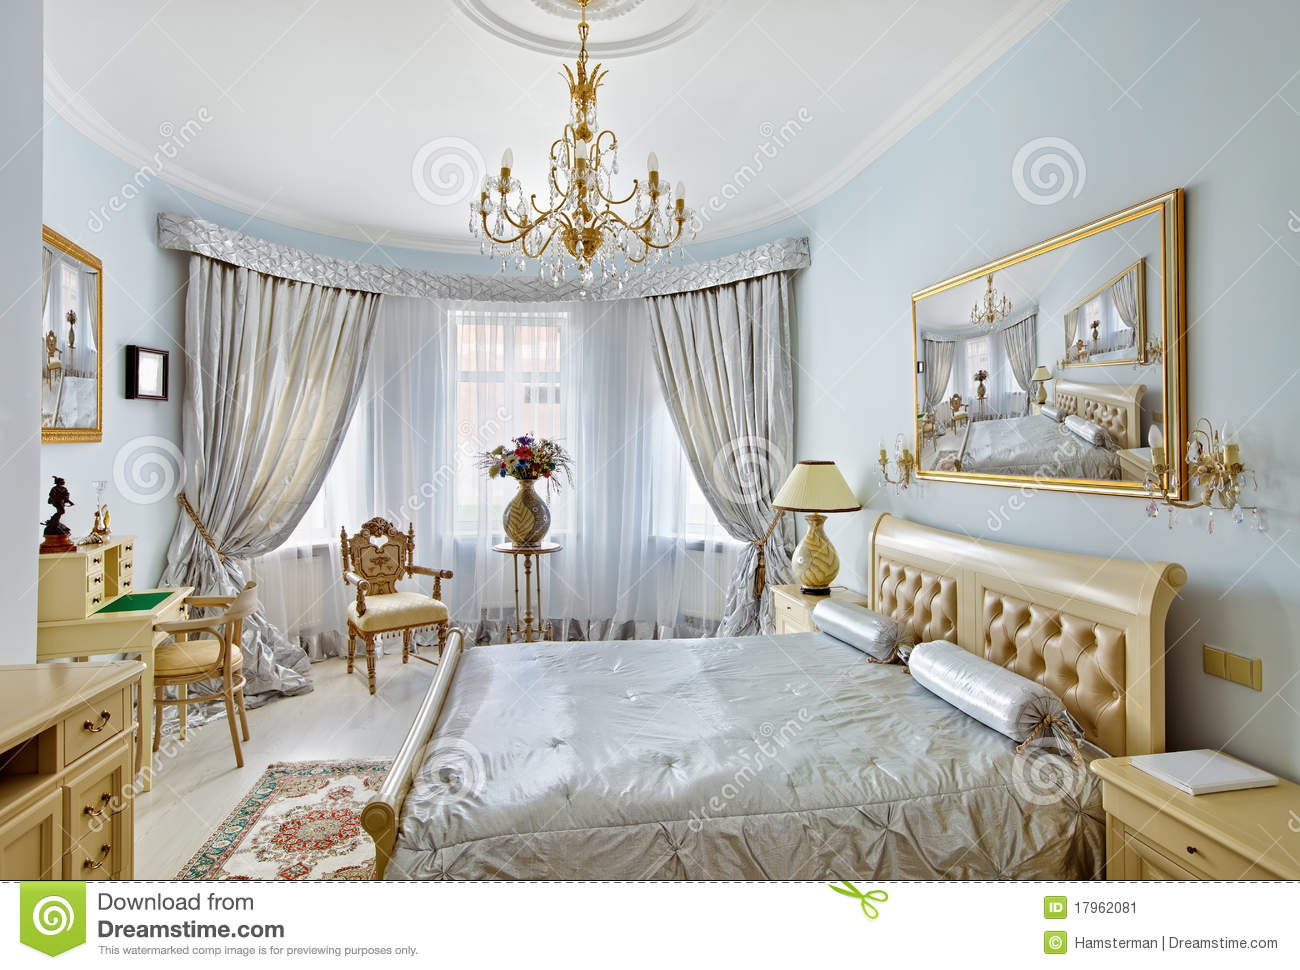 Classic Style Luxury Bedroom Interior In Blue Stock Image  Image of blue, bedroom: 17962081